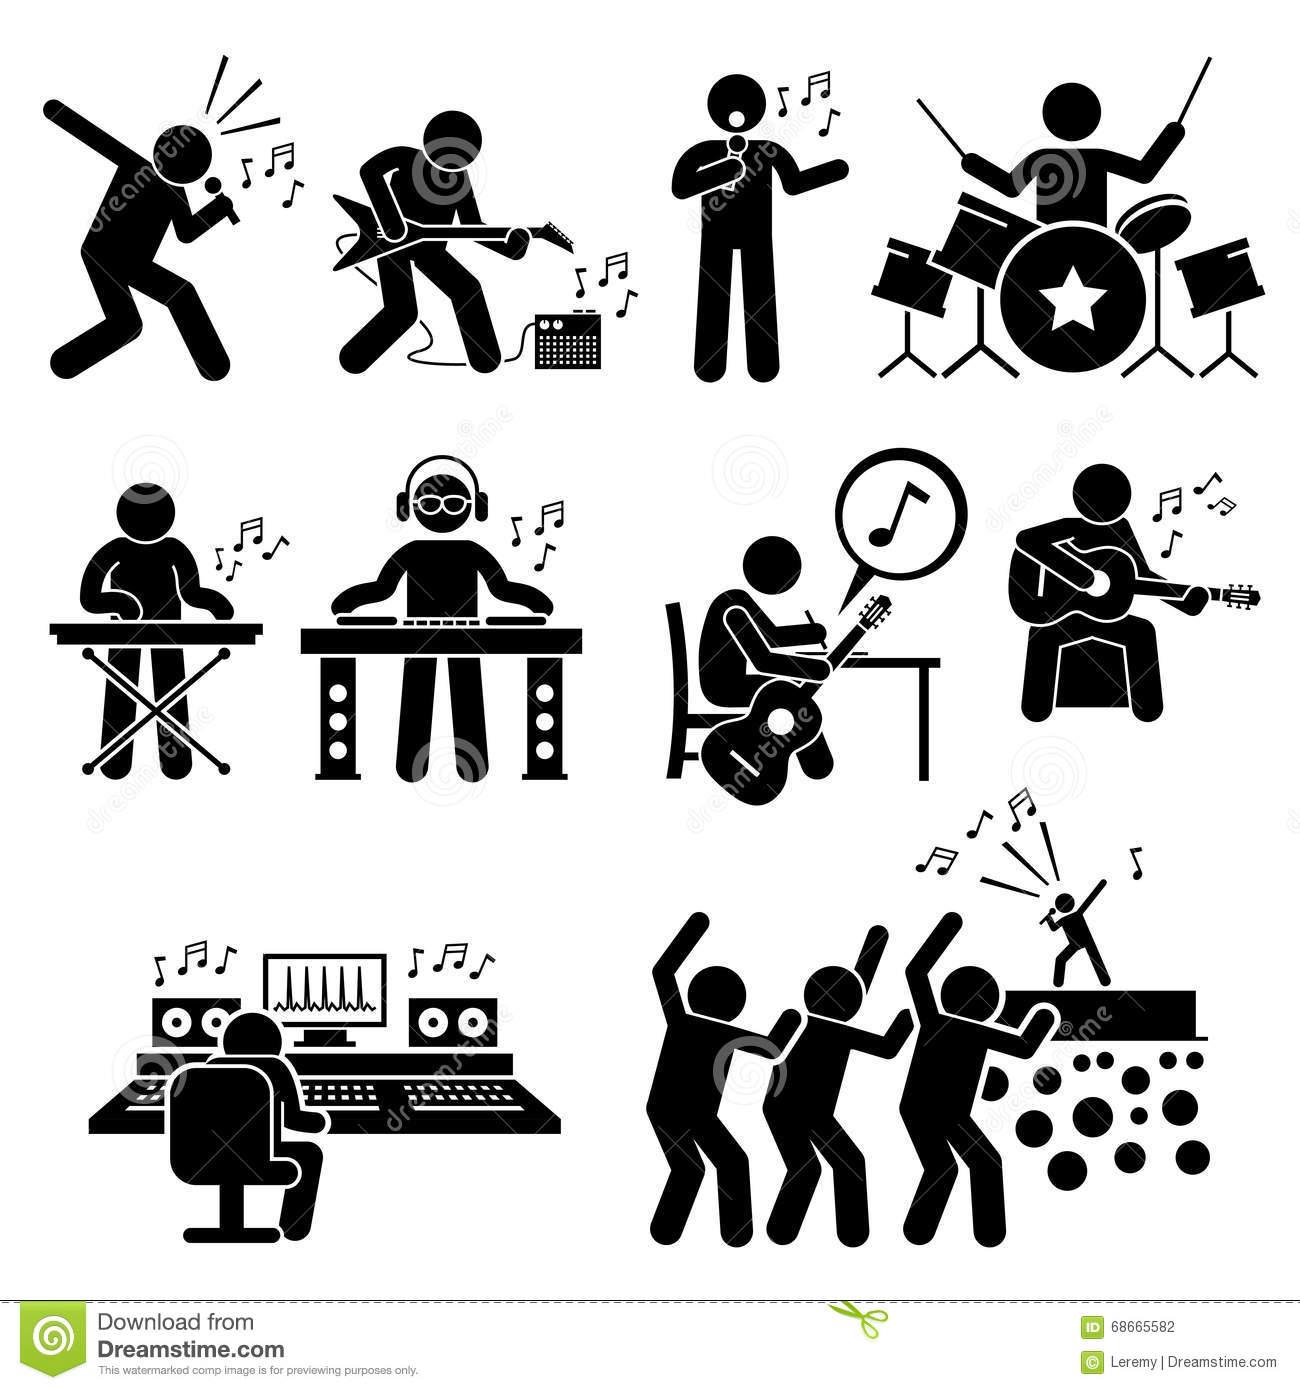 ... Artist With Musical Instruments Clipart Stock Vector - Image: 68665582